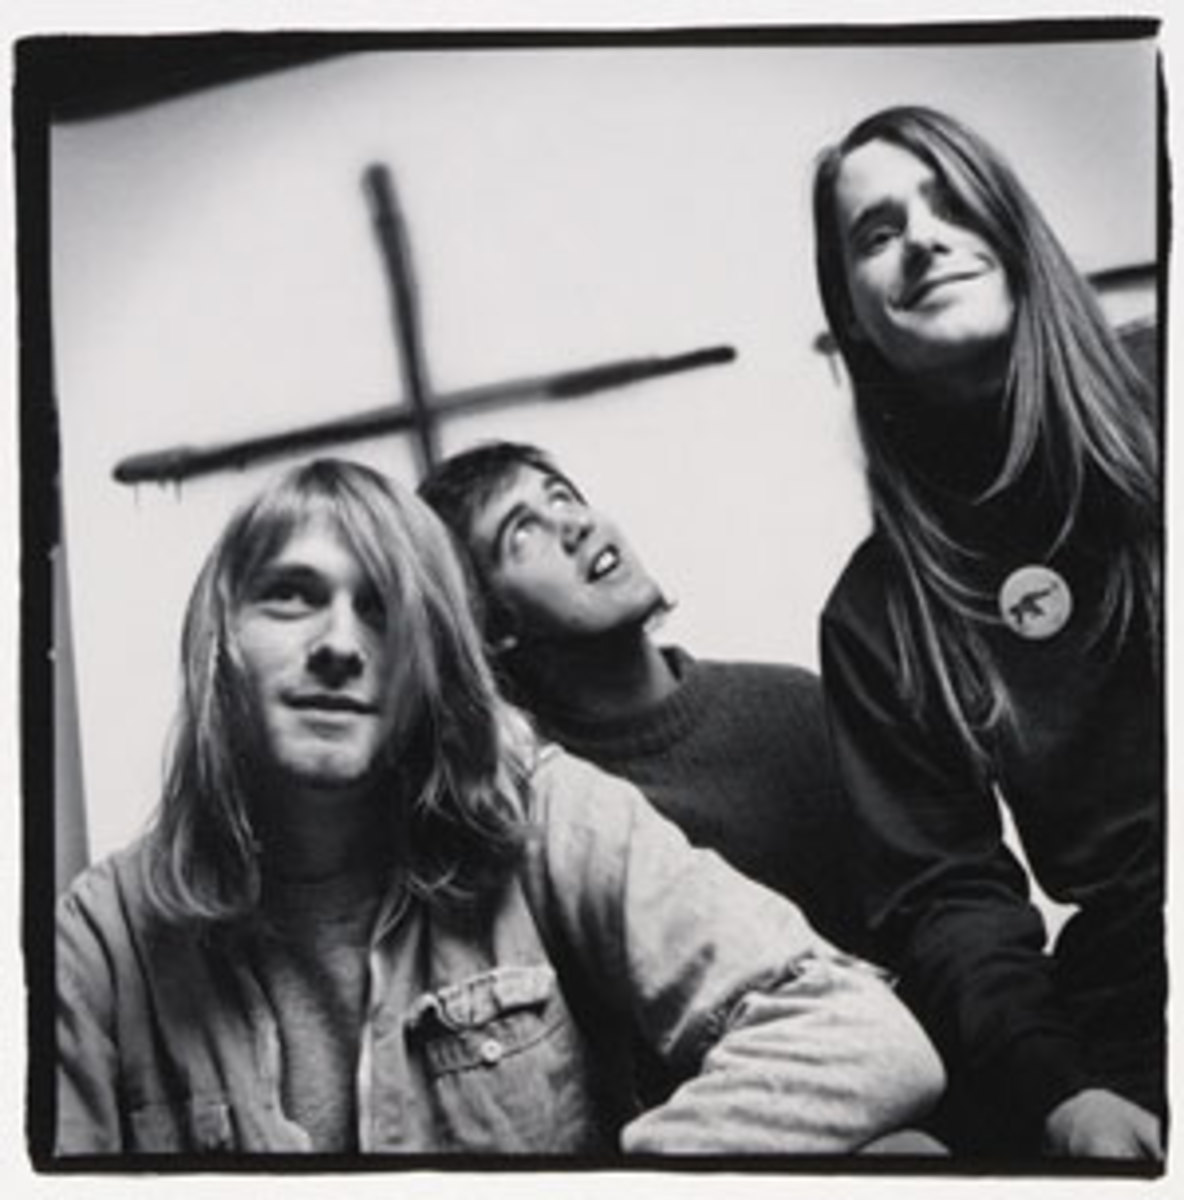 Back in the days of 'Bleach,' it was Chad Channing (far right) behind the drum kit for Nirvana, along with frontman Kurt Cobain and bassist Krist Novoselic. Courtesy Sub Pop Records